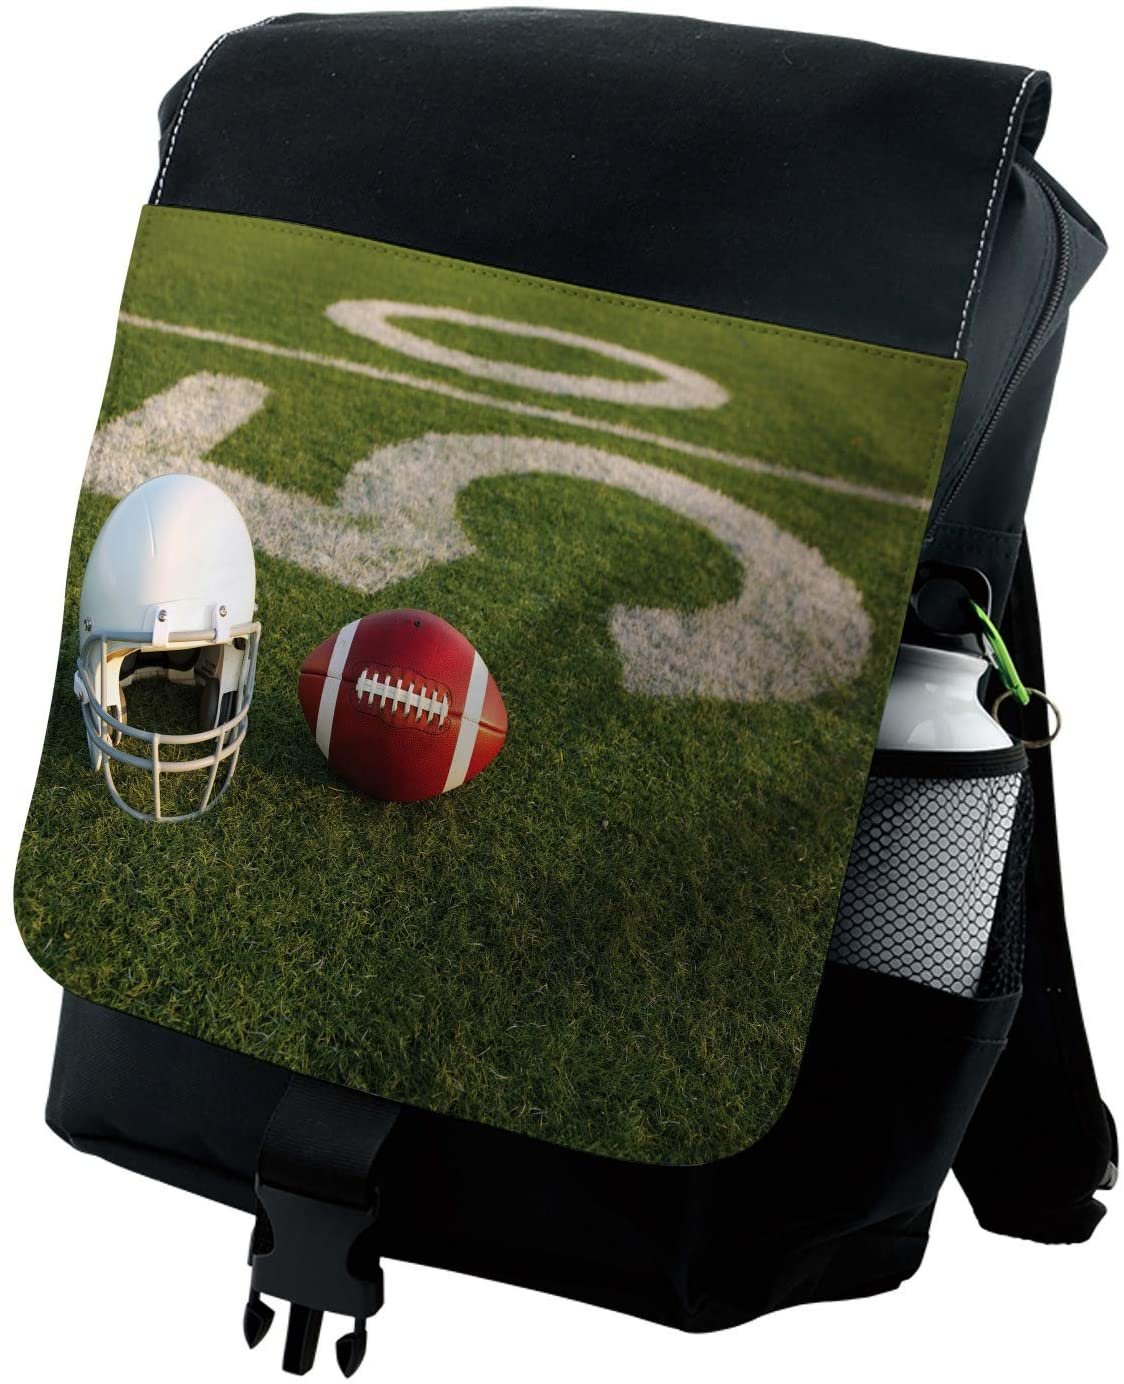 Lunarable Sports Backpack, Football on the Green Grass, Durable All-Purpose Bag